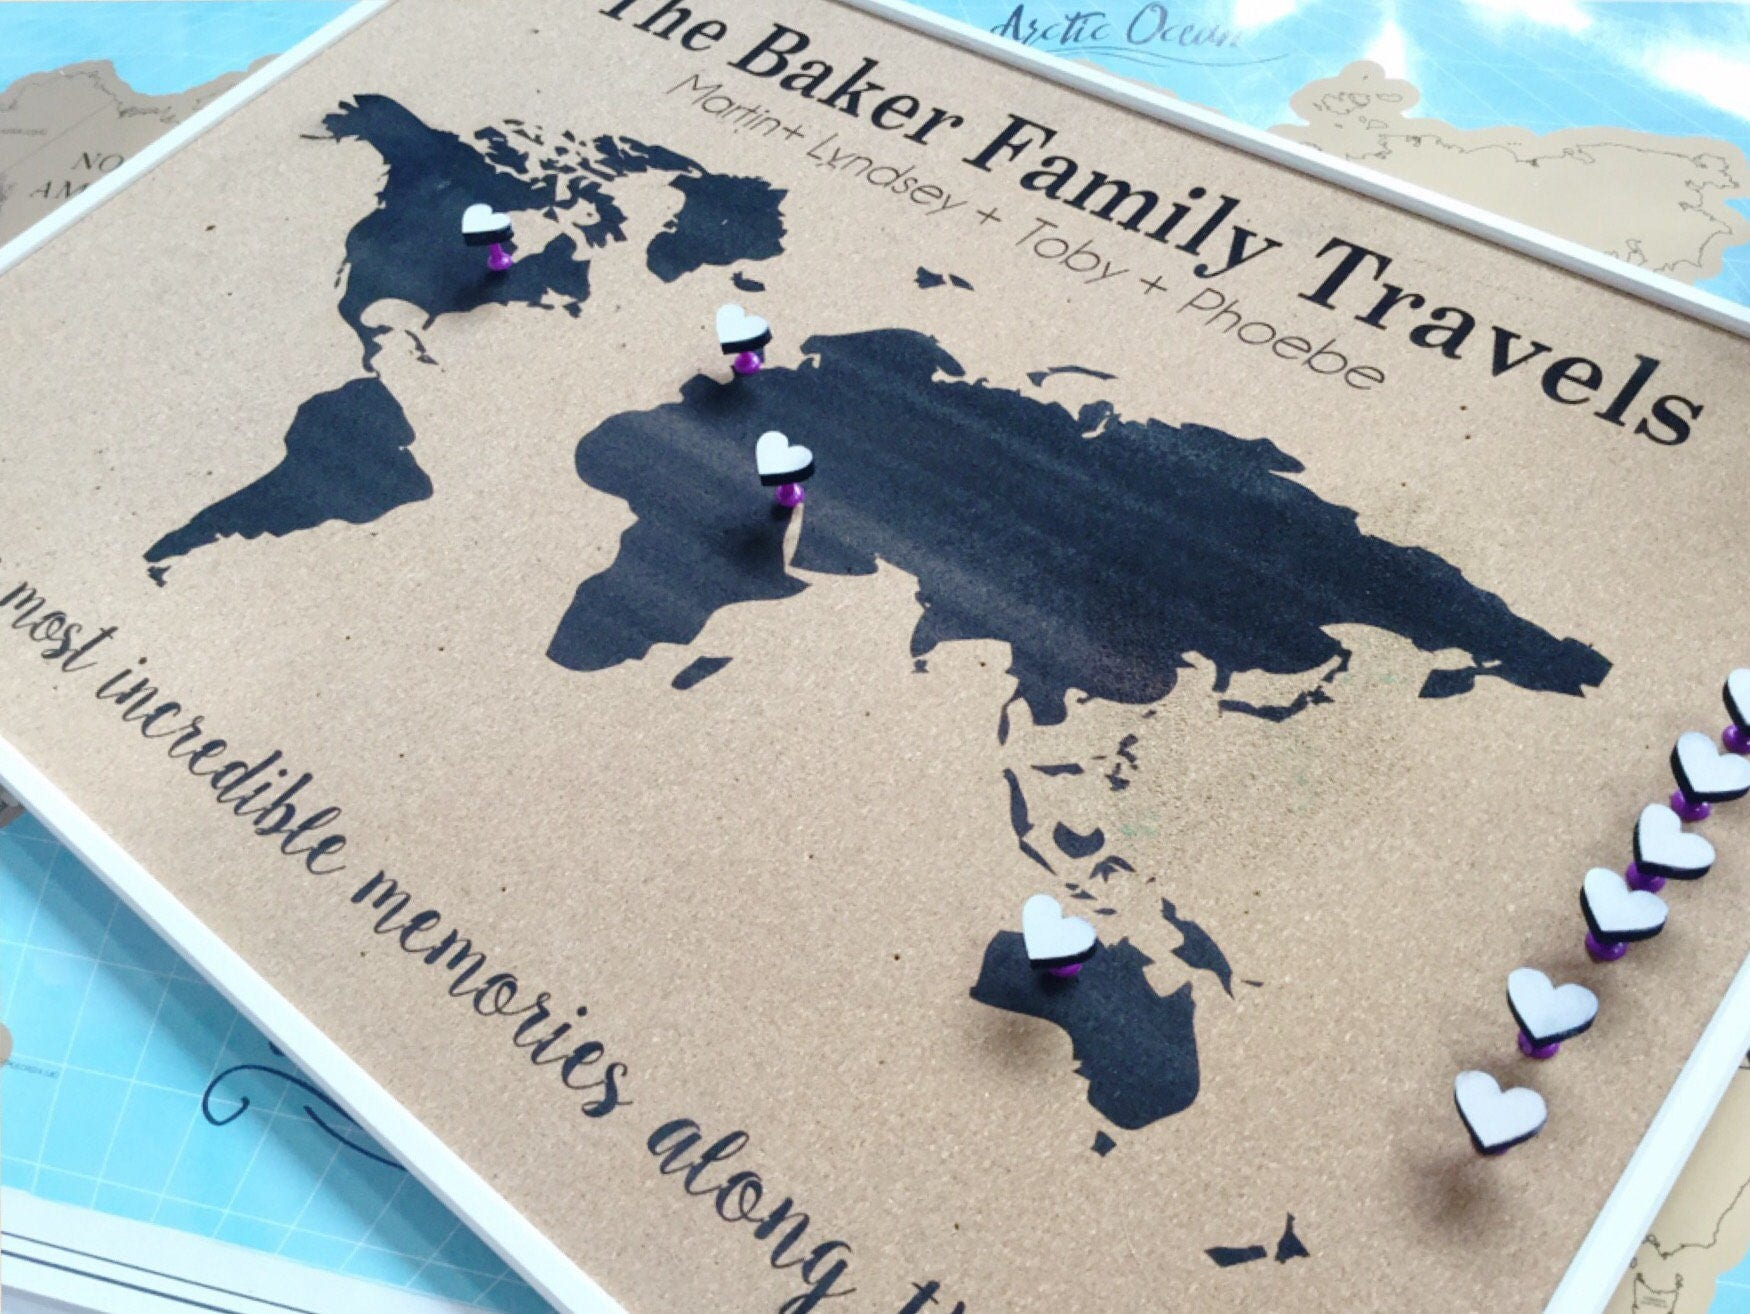 Personalised push pin world map cork board map anniversary gift gallery photo gallery photo gallery photo gallery photo gallery photo gumiabroncs Choice Image